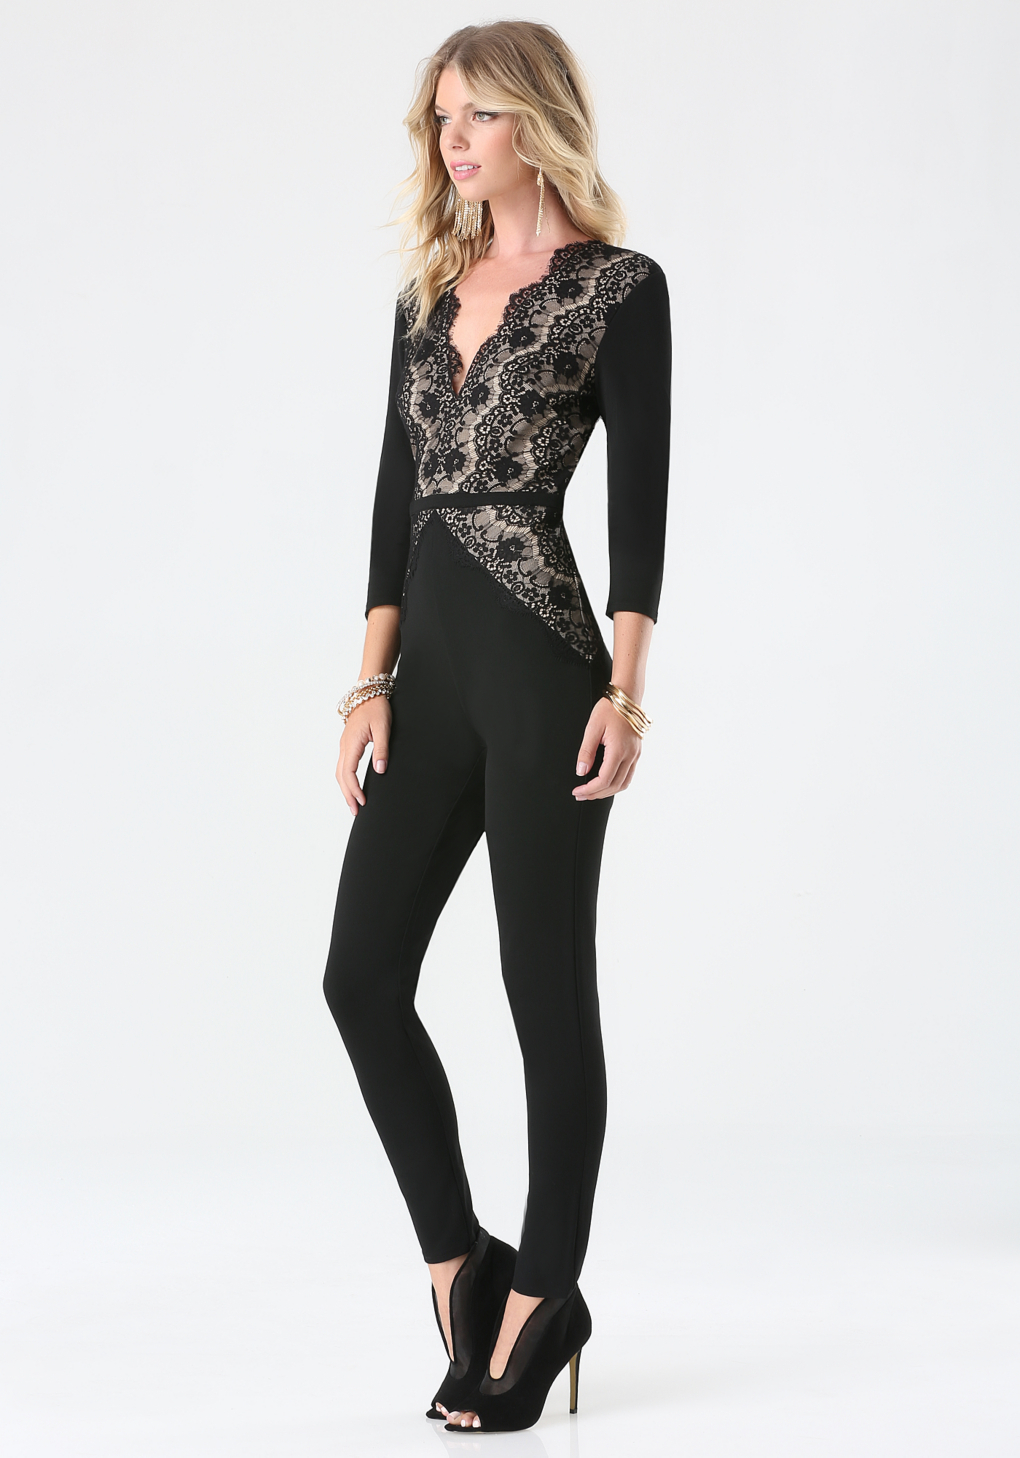 Lyst - Bebe Petite Magda Lace Jumpsuit In Black-9808